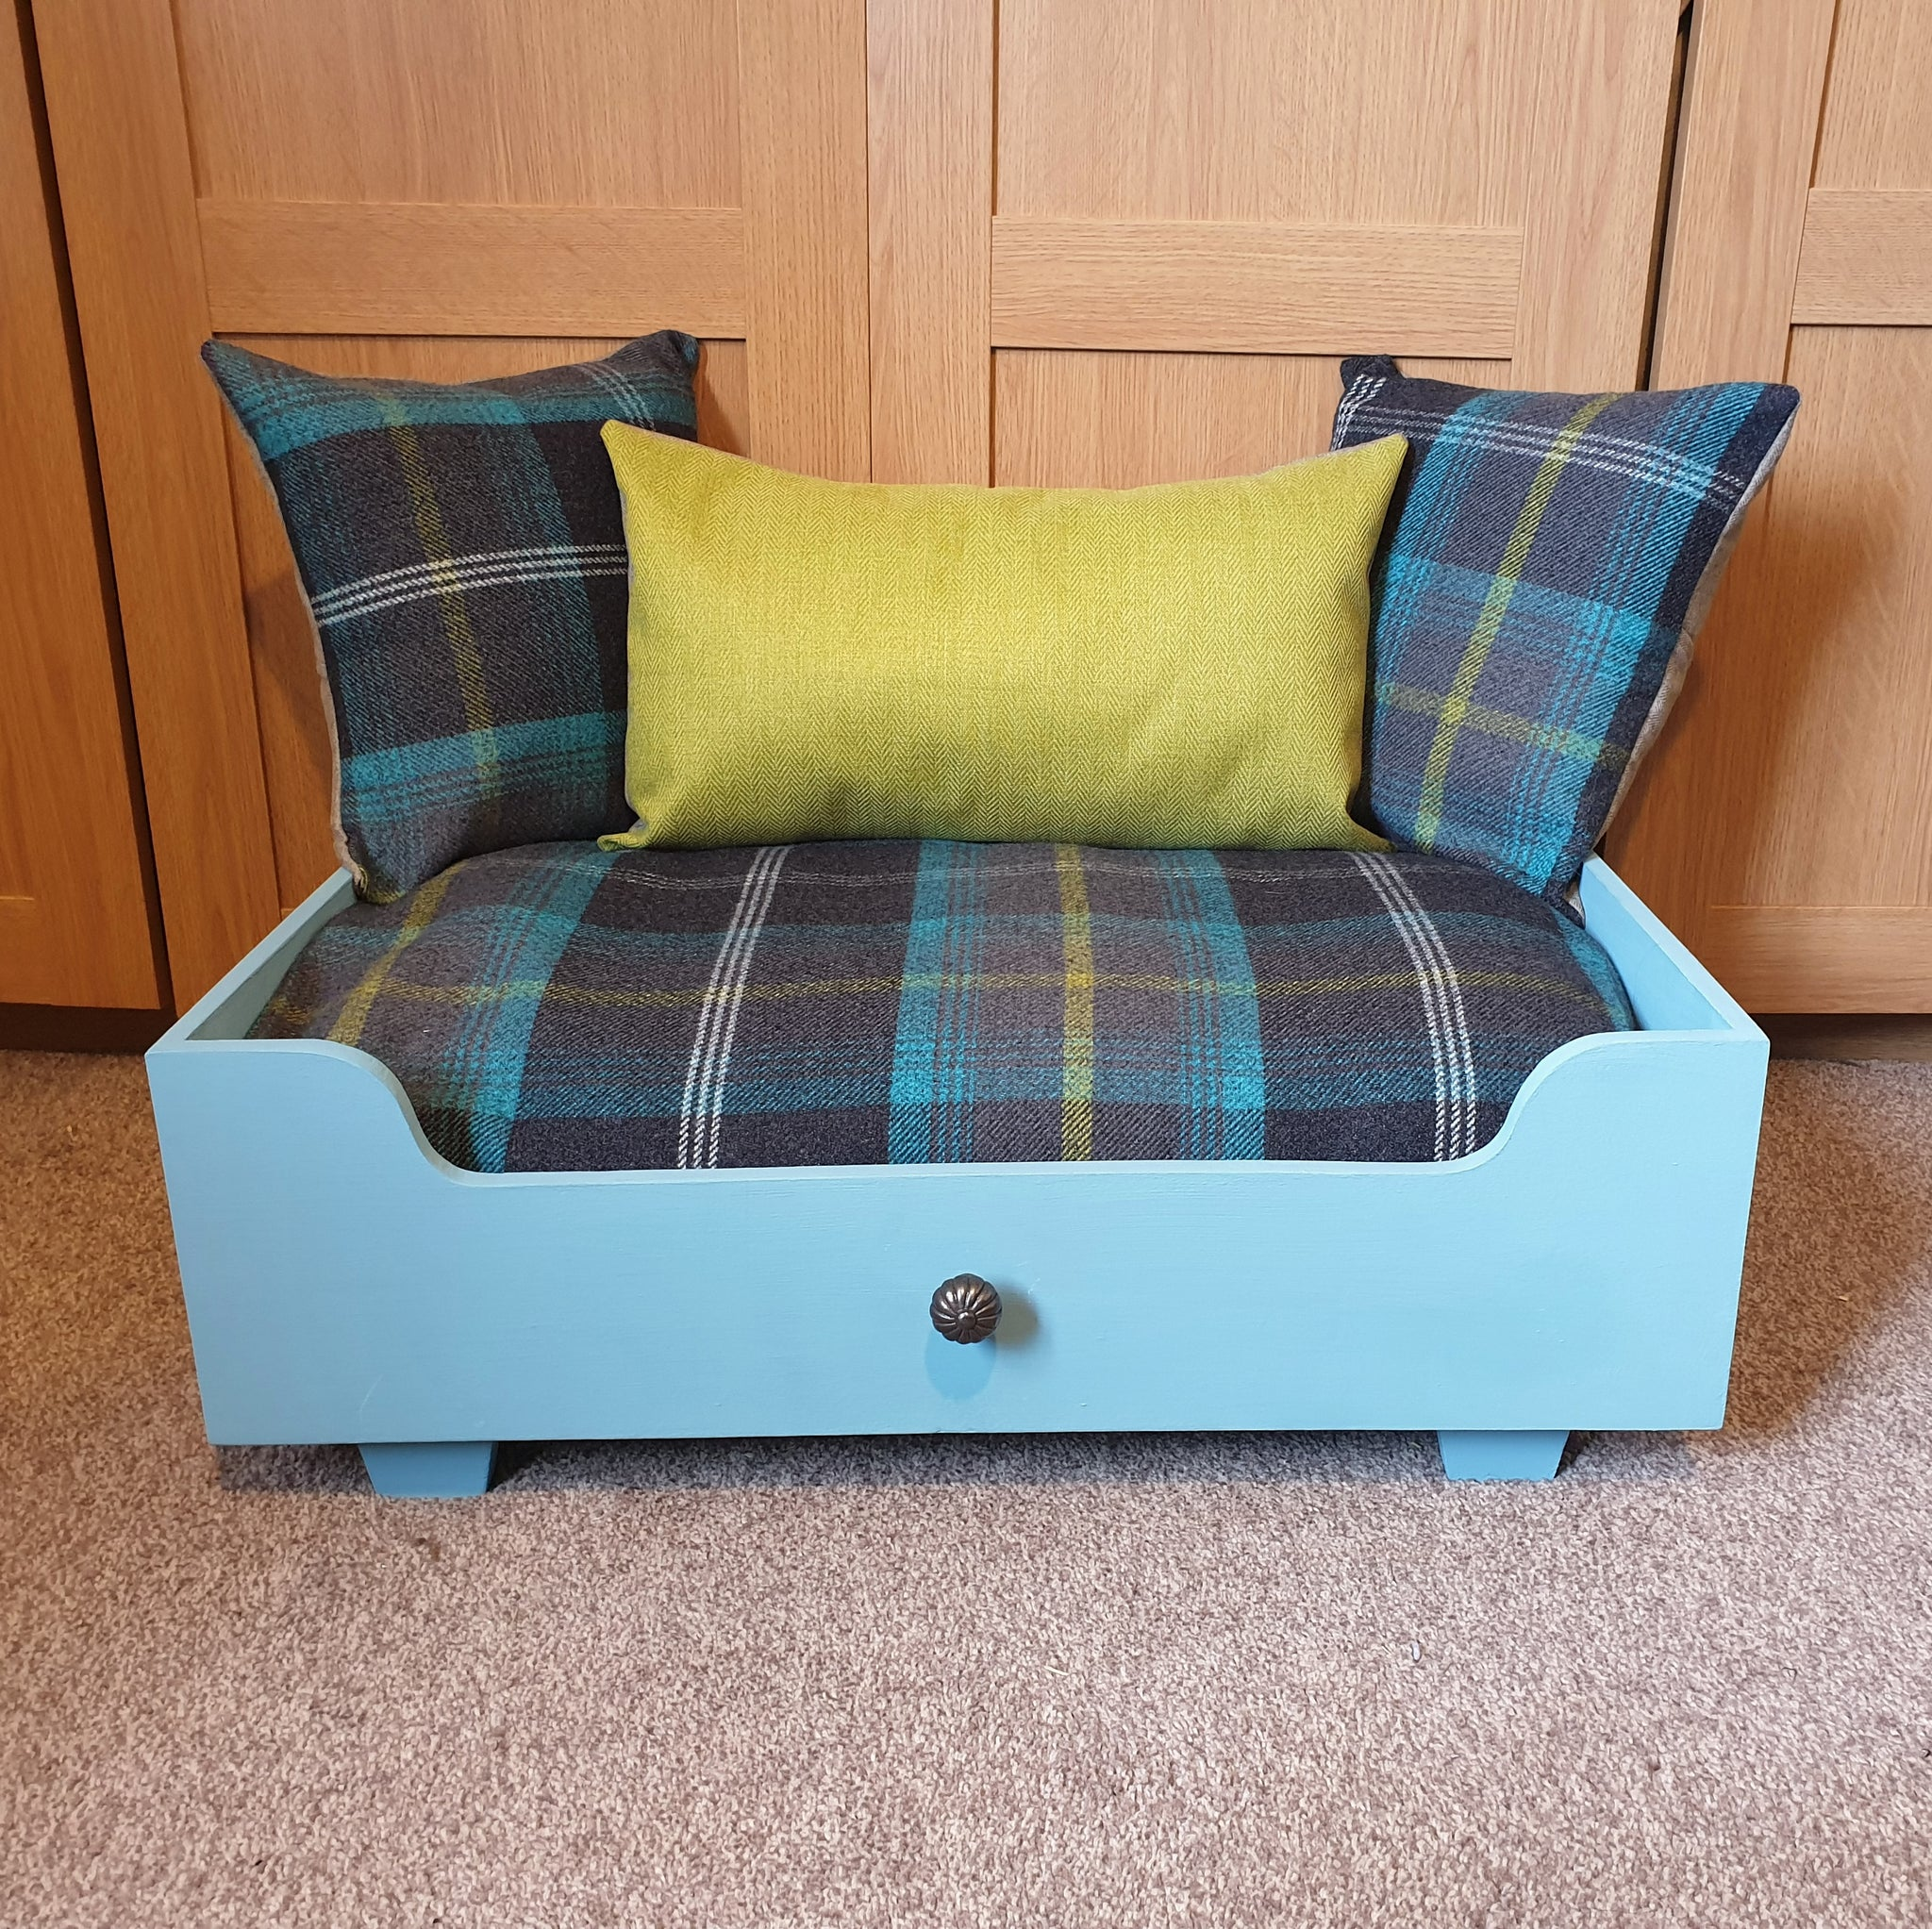 Handmade Dog Bed - Belgrave blue frame with blue tartan mattress and pillows + green herringbone centre pillow